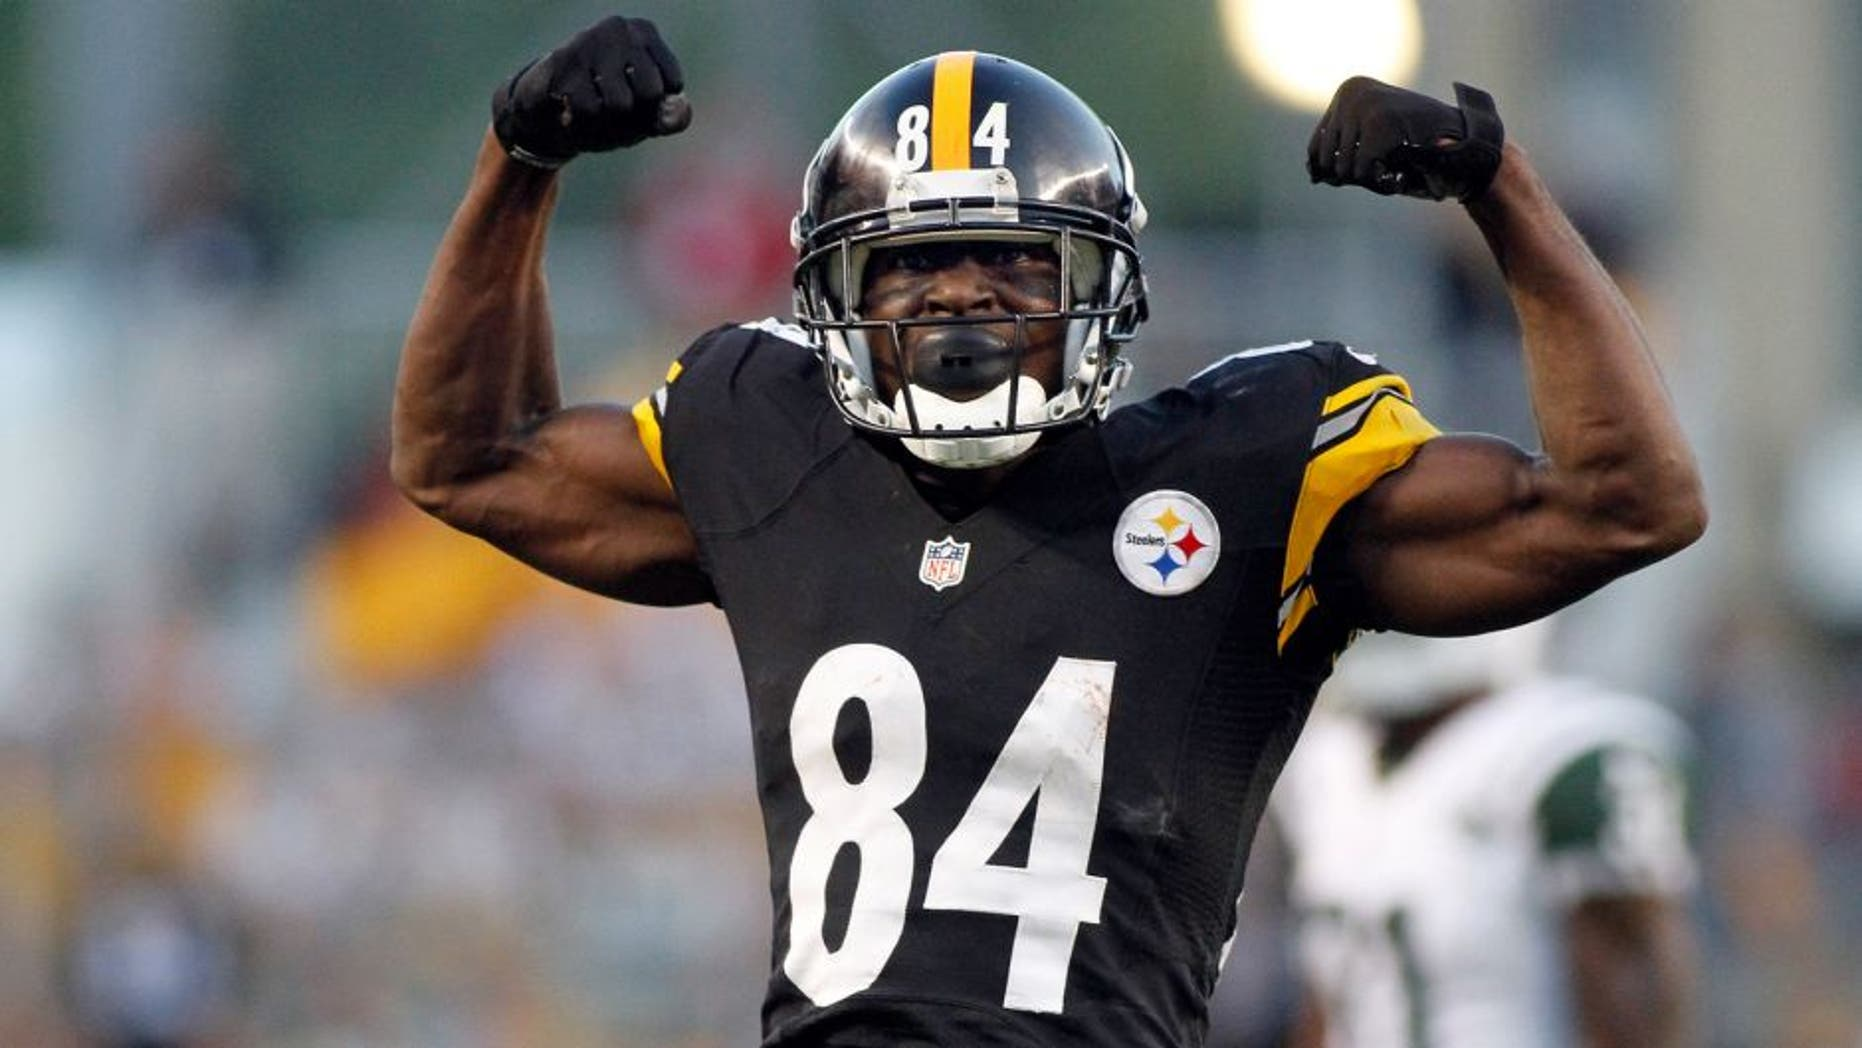 PITTSBURGH, PA - SEPTEMBER 16: Antonio Brown #84 of the Pittsburgh Steelers reacts after making a catch in the second half against the New York Jets during the game on September 16, 2012 at Heinz Field in Pittsburgh, Pennsylvania. The Steelers defeated the Jets 27-10. (Photo by Justin K. Aller/Getty Images)